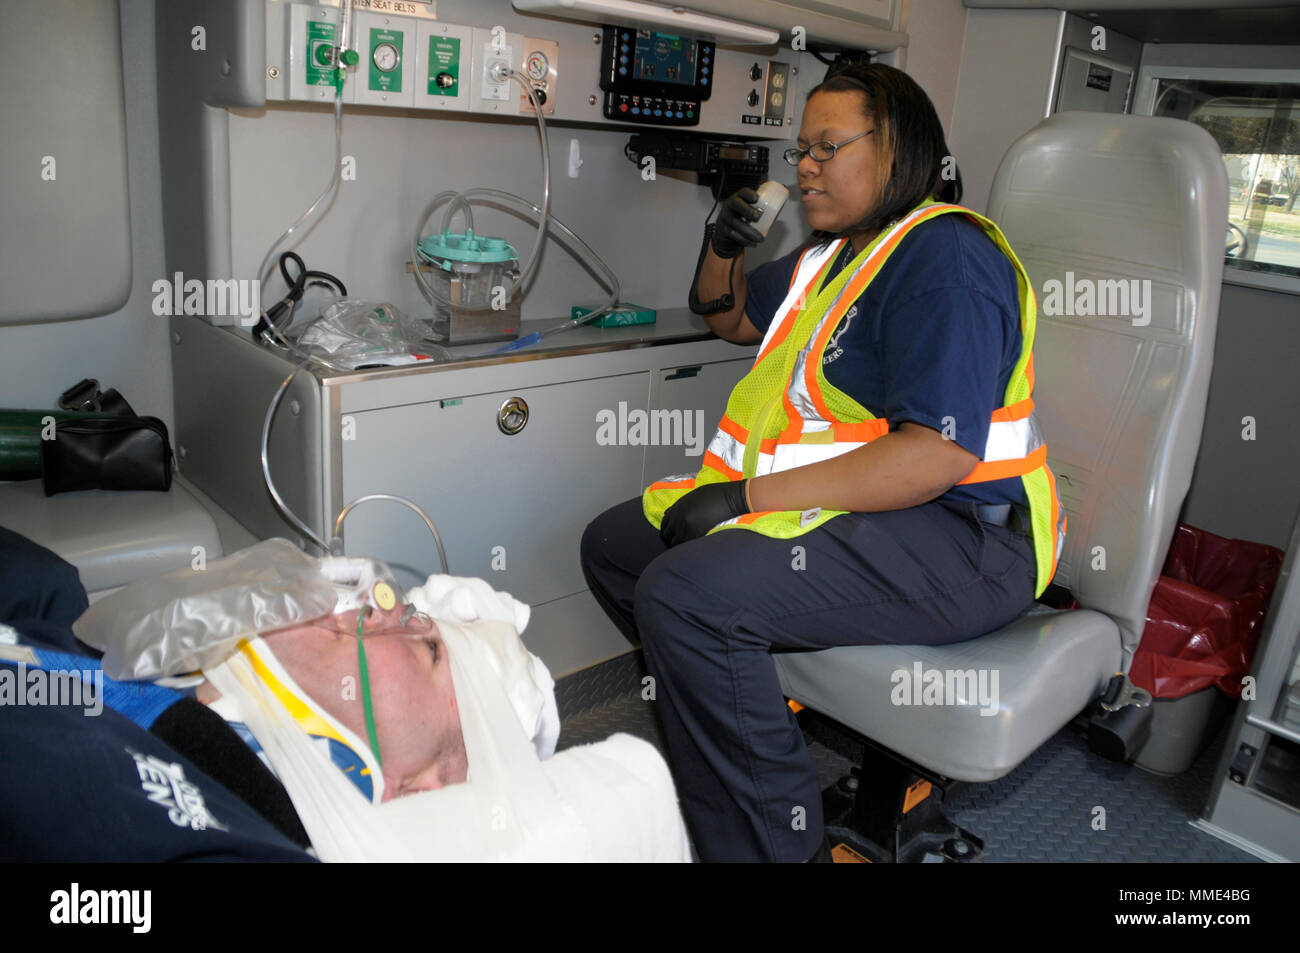 medic  relays the victim's condition to a hospital  via a 2 way radio  (model released) - Stock Image